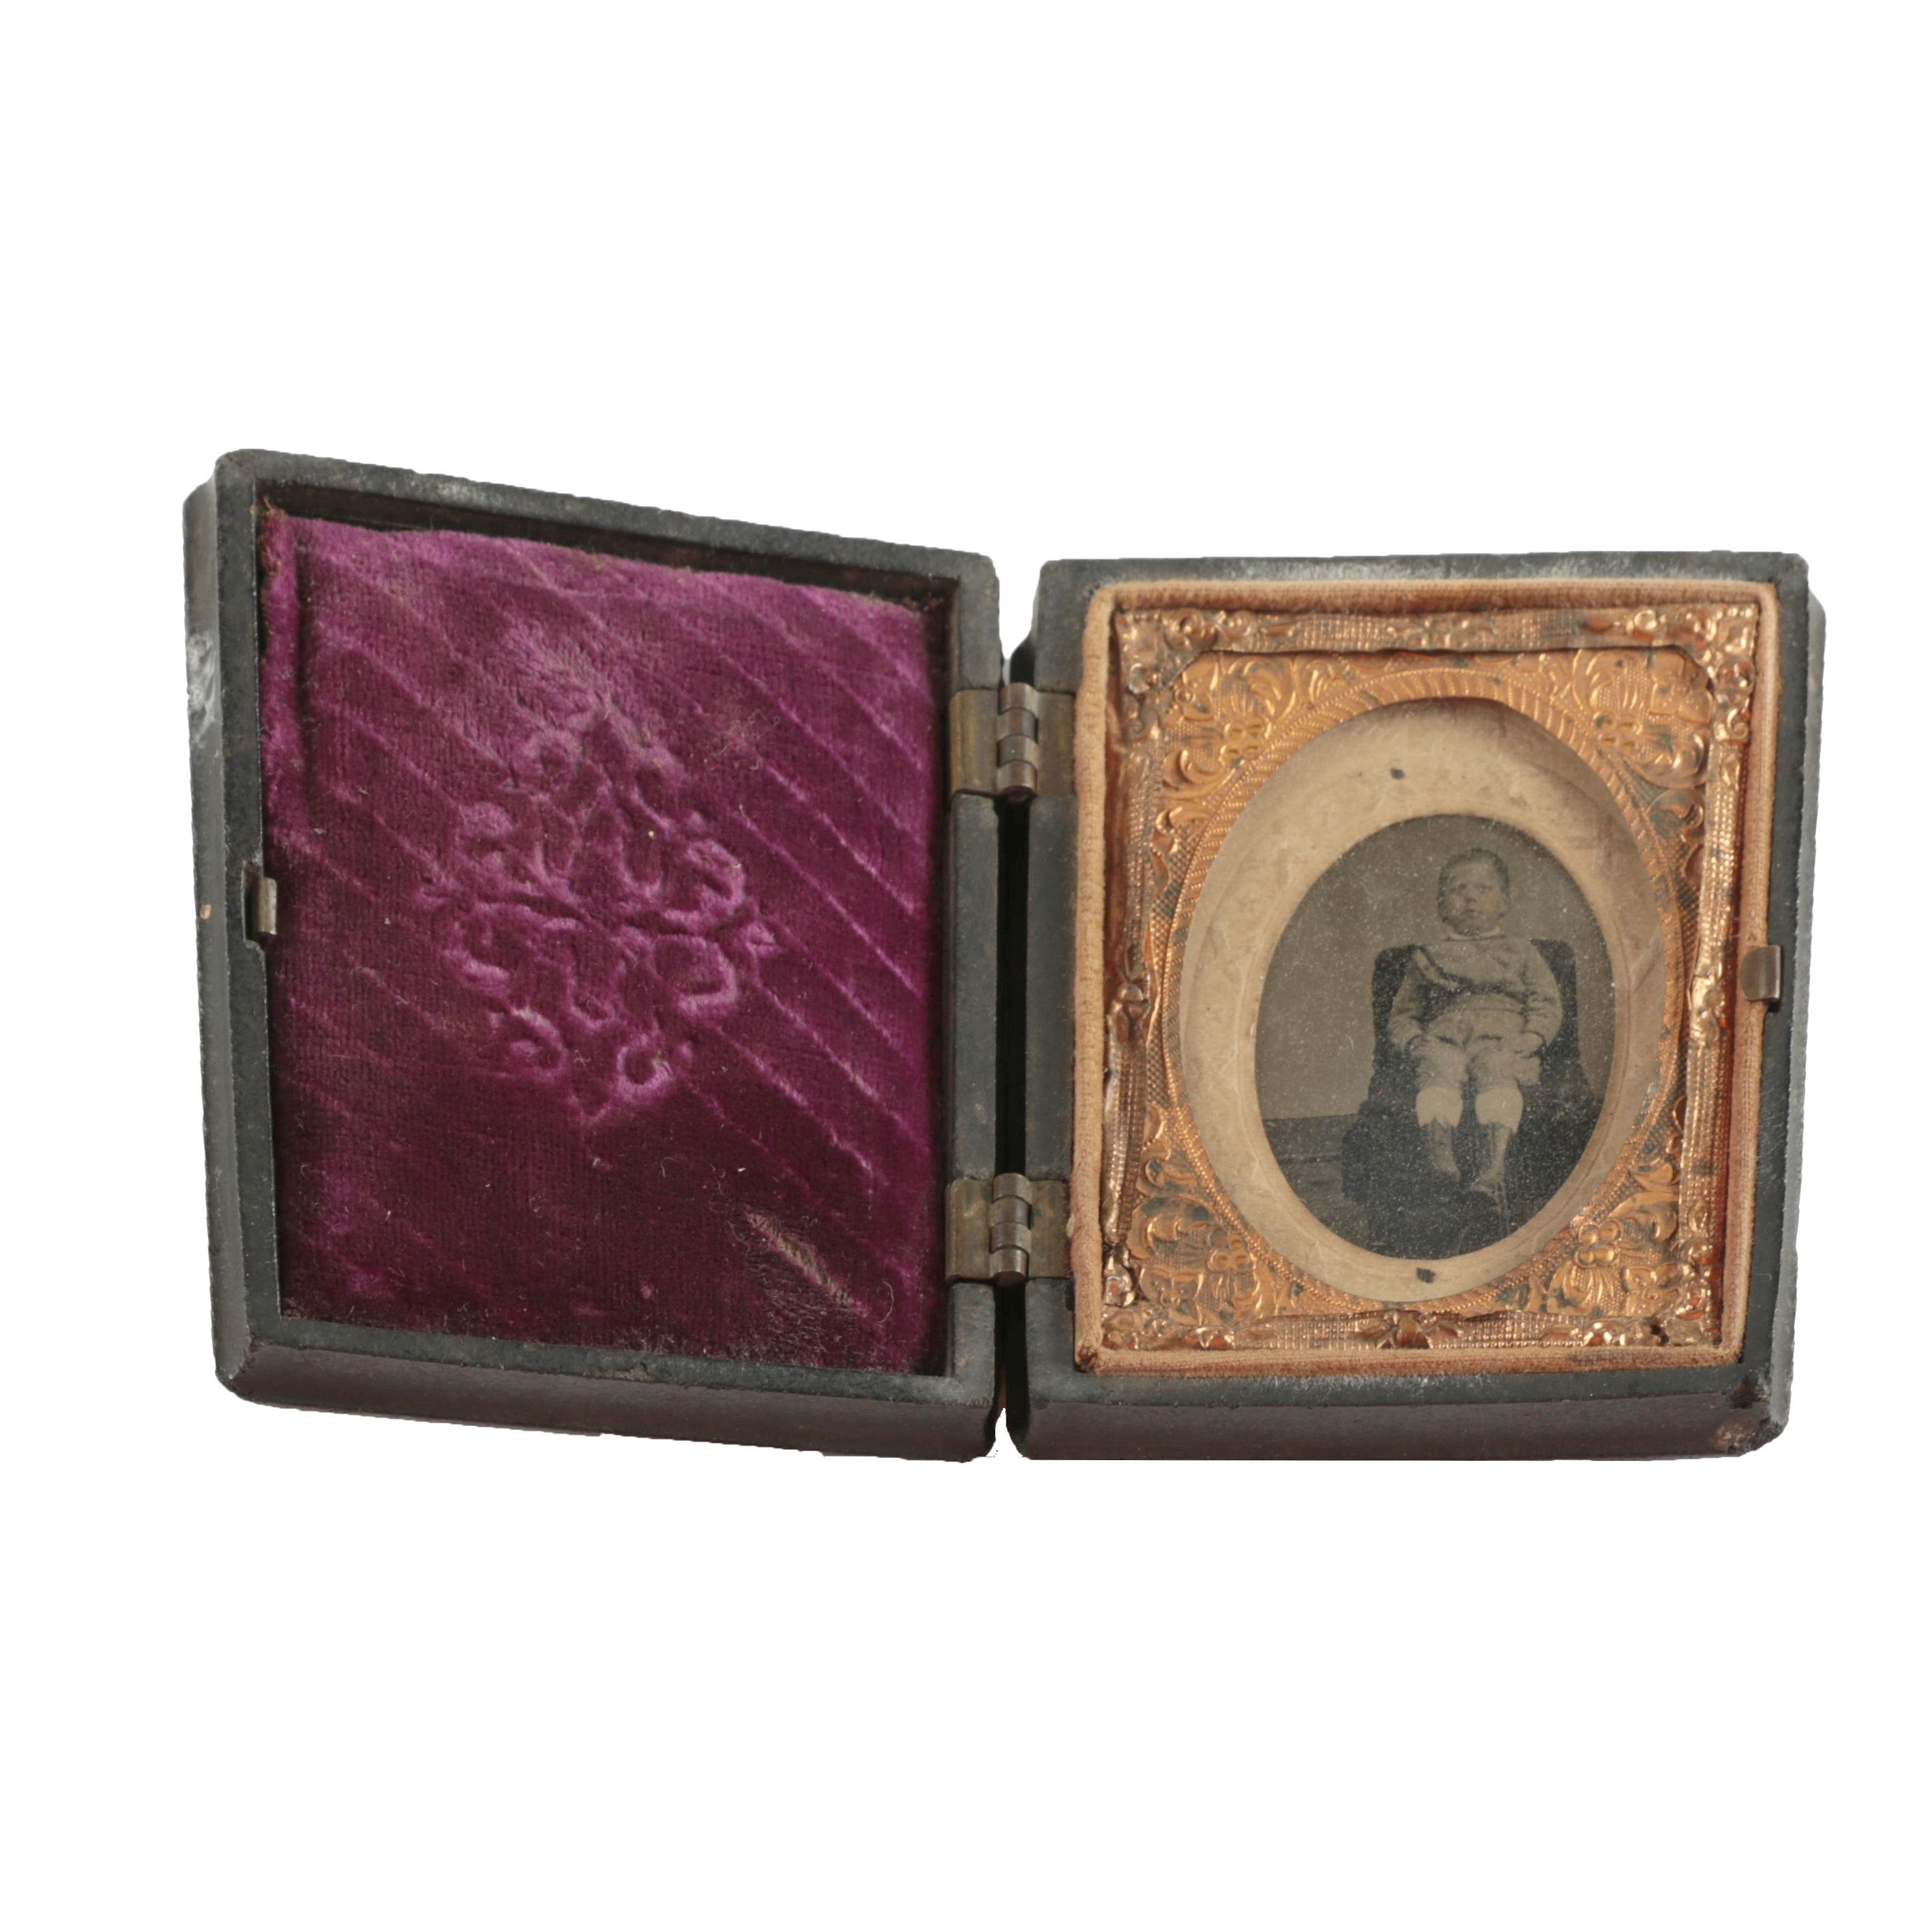 19th Century Tintype Photograph Portrait in Thermoplastic Union Case